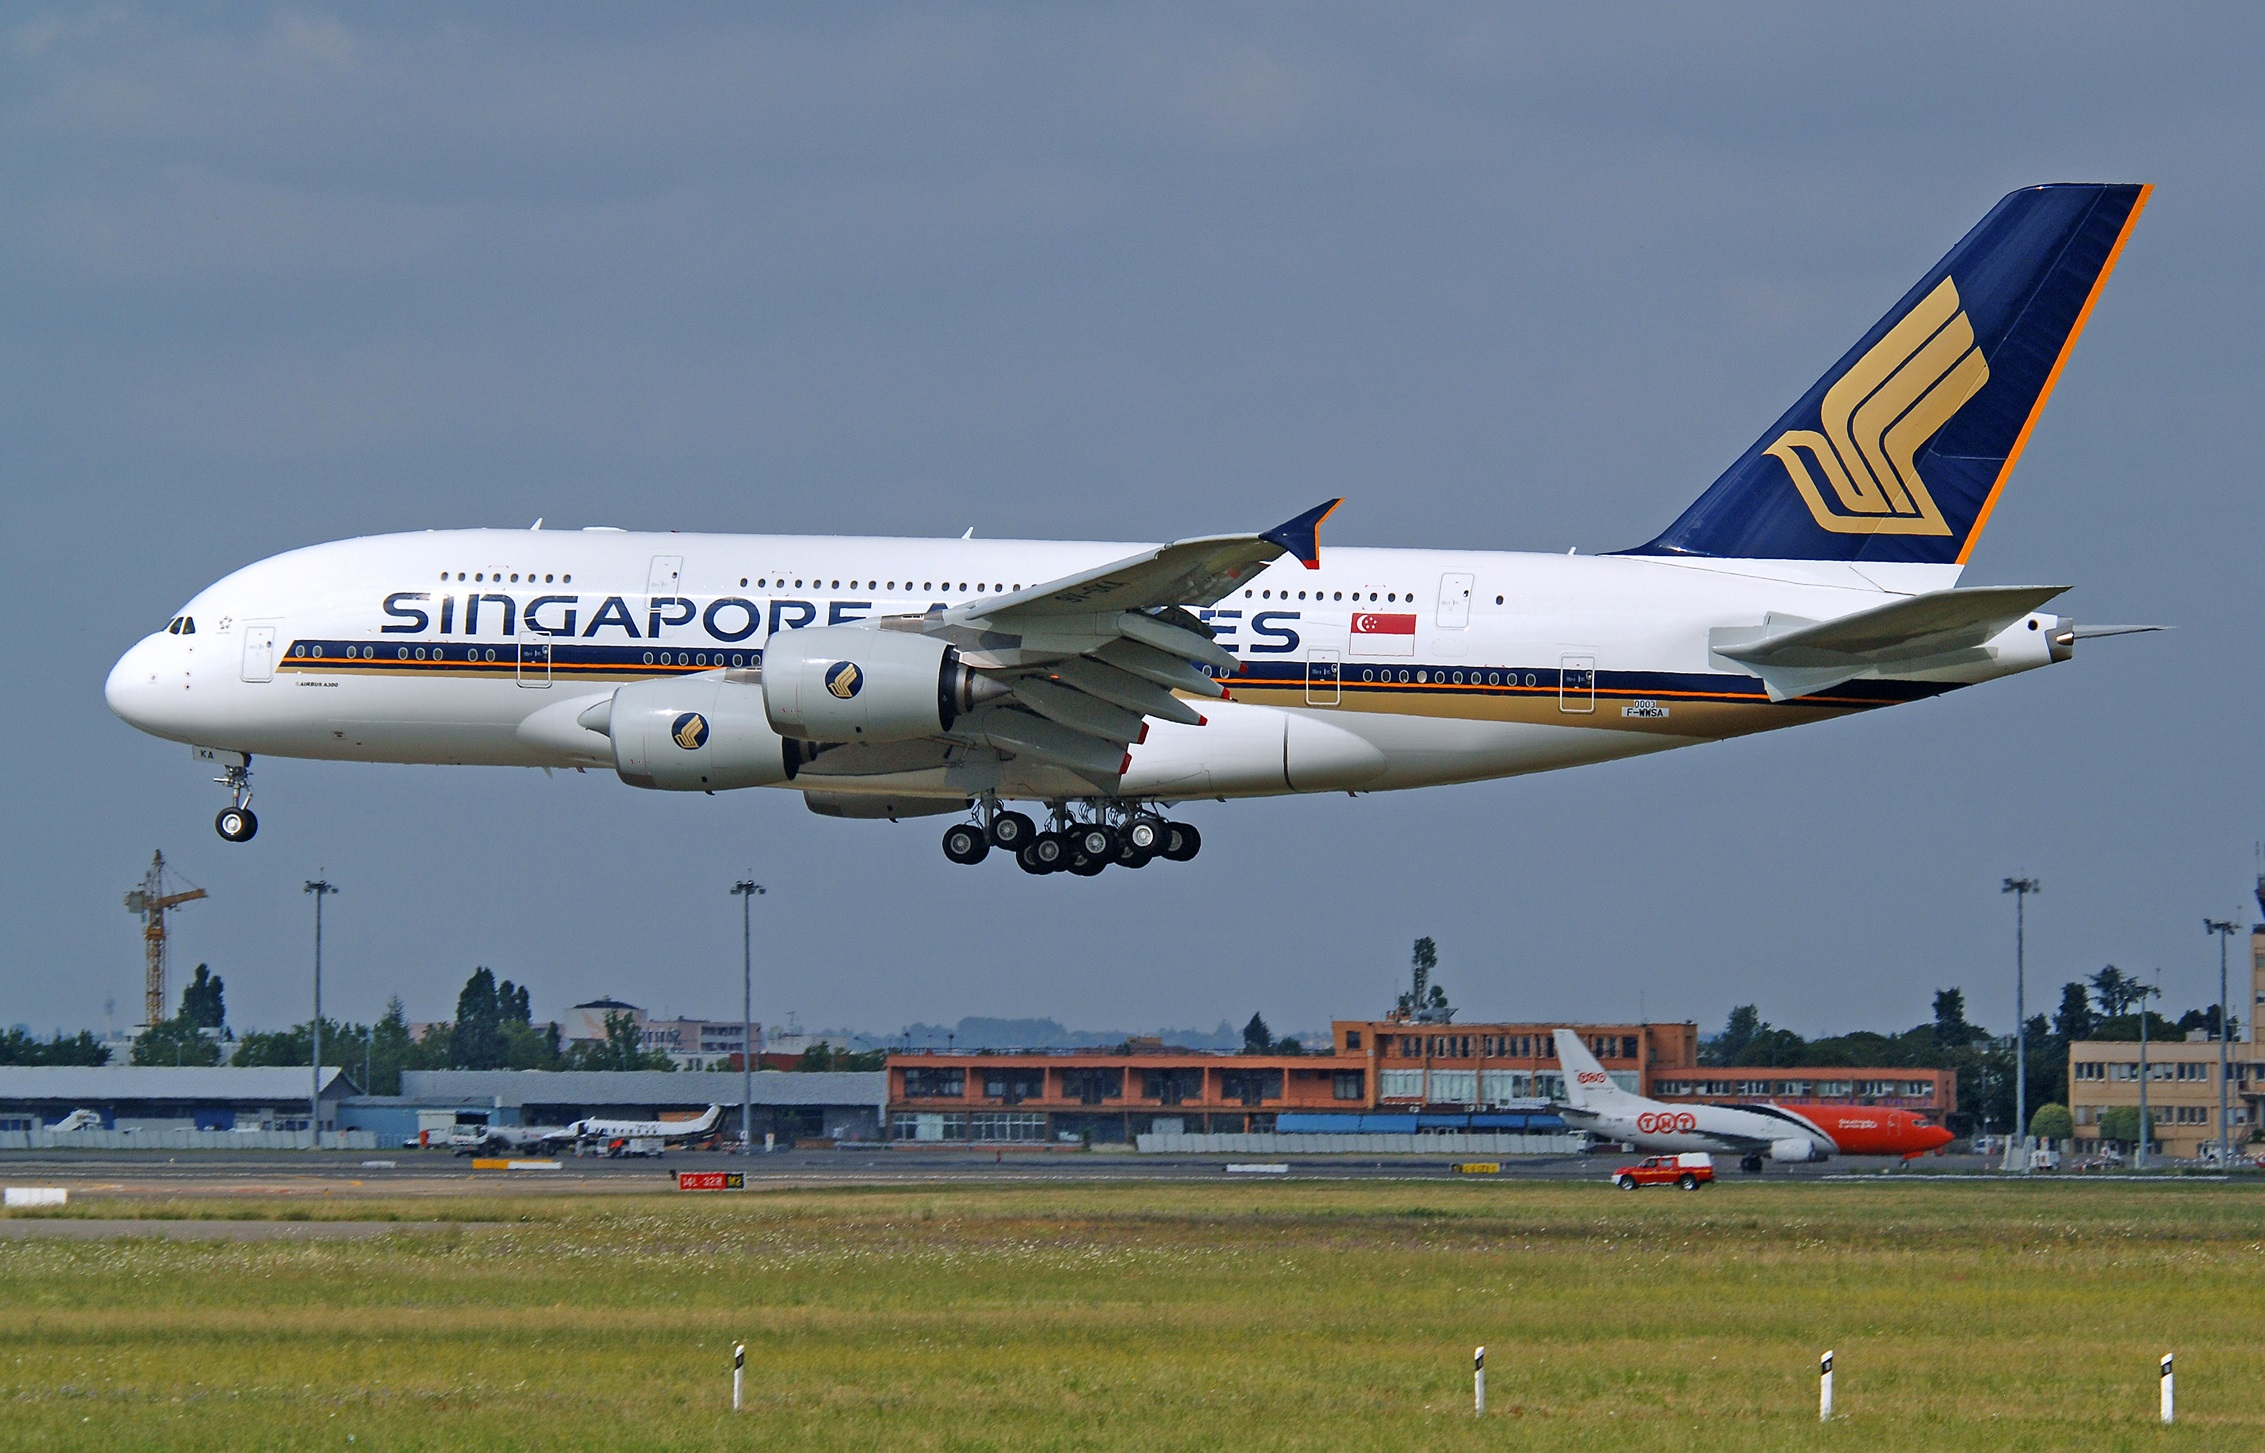 Singapore Airlines to slash 4,300 jobs across group as pandemic takes toll